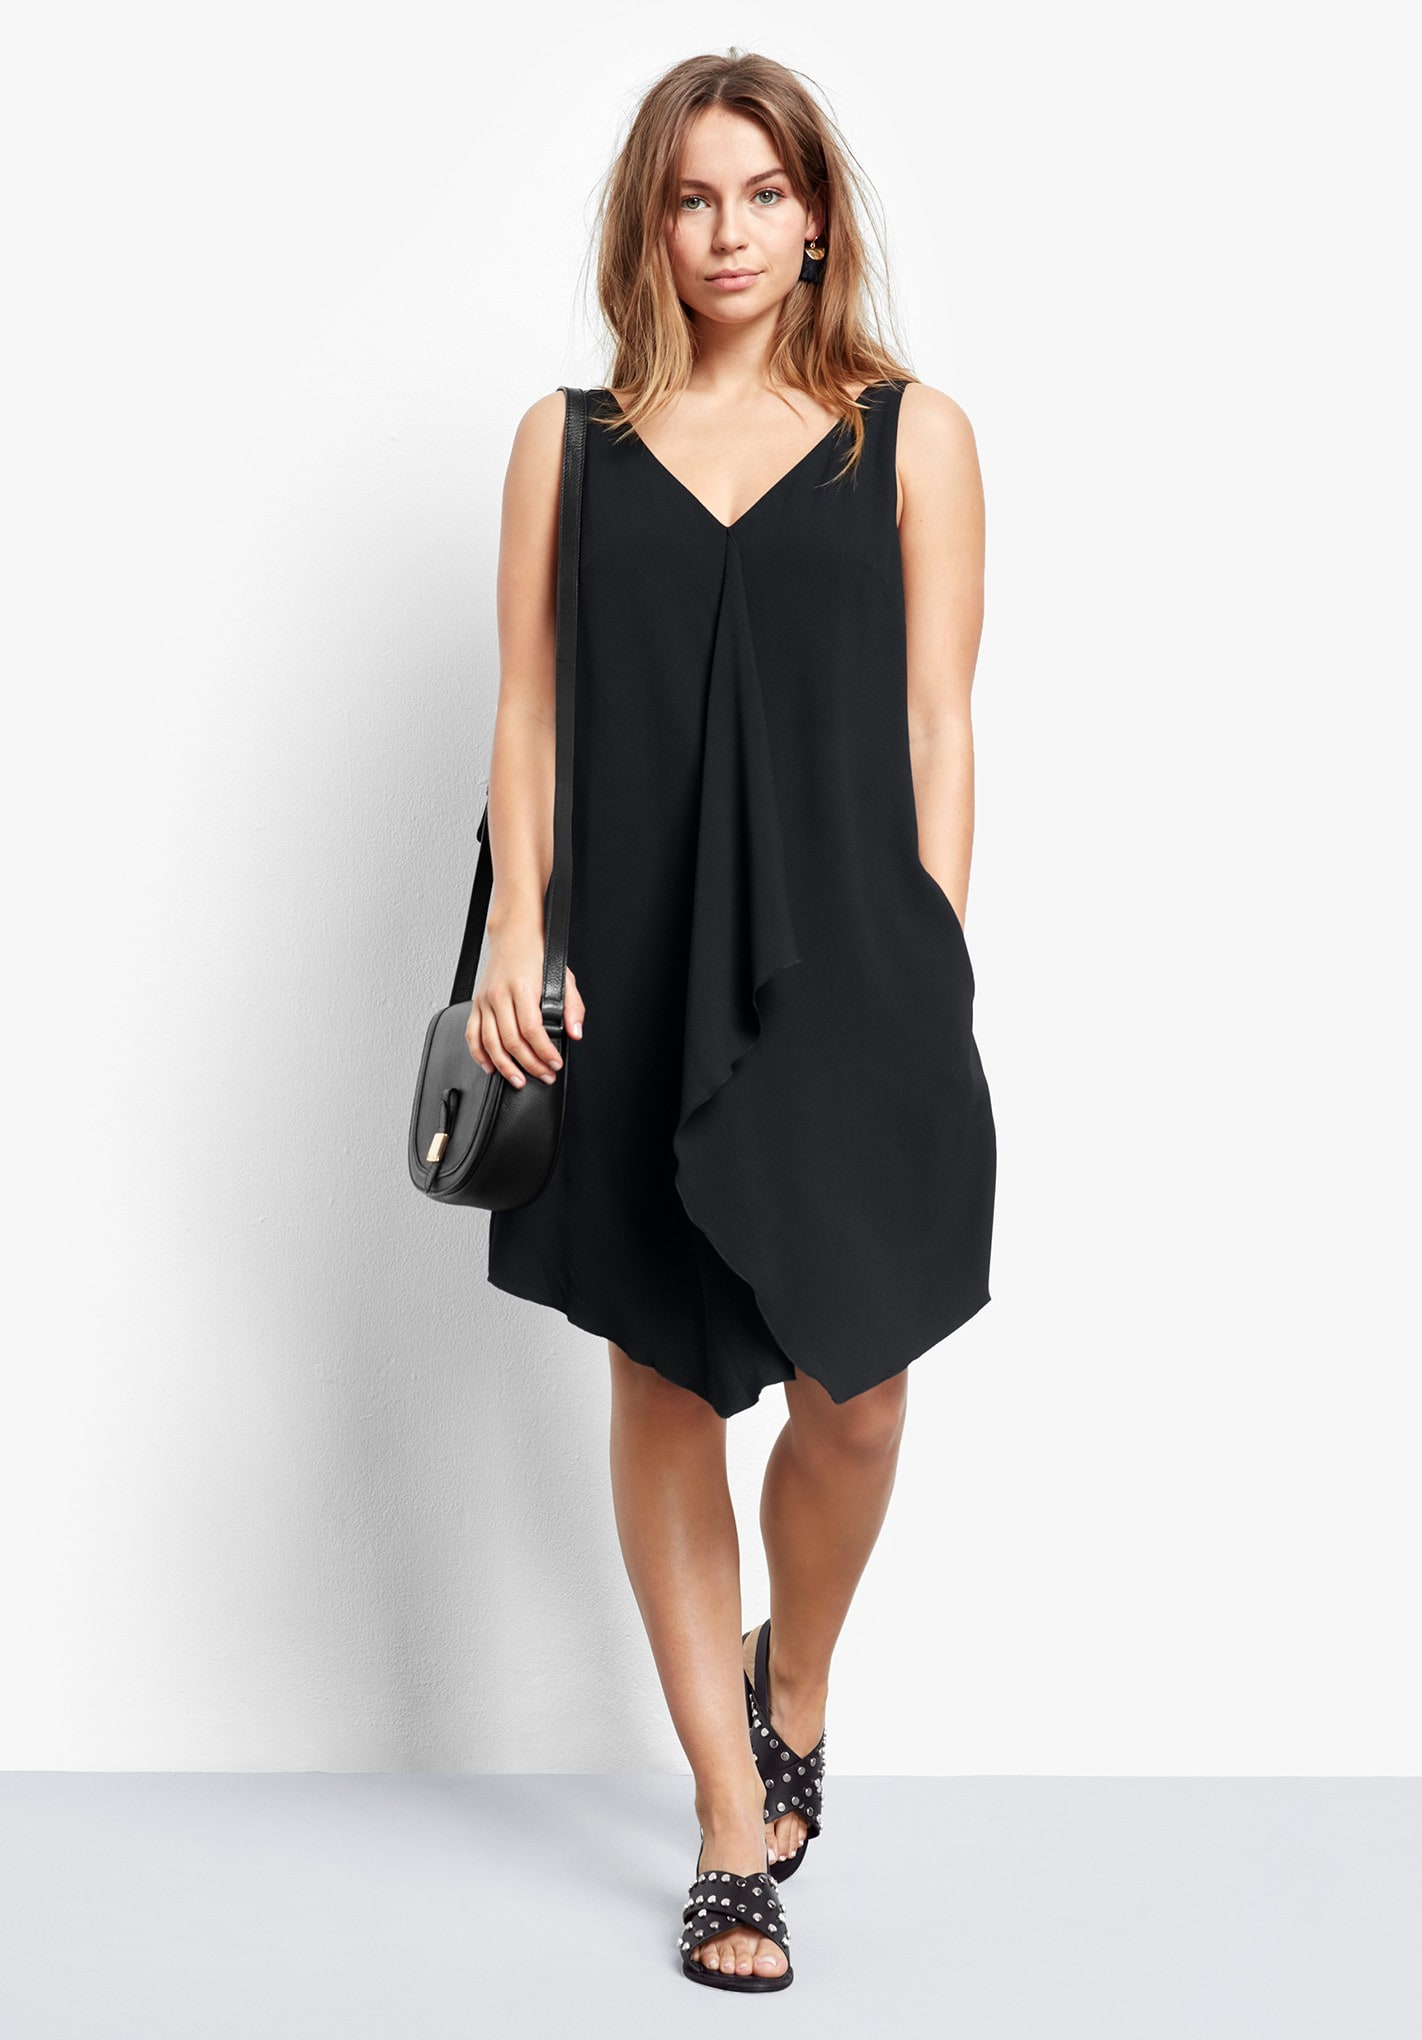 97366adf3b Delilah Frill Dress from hush was £65 now £40